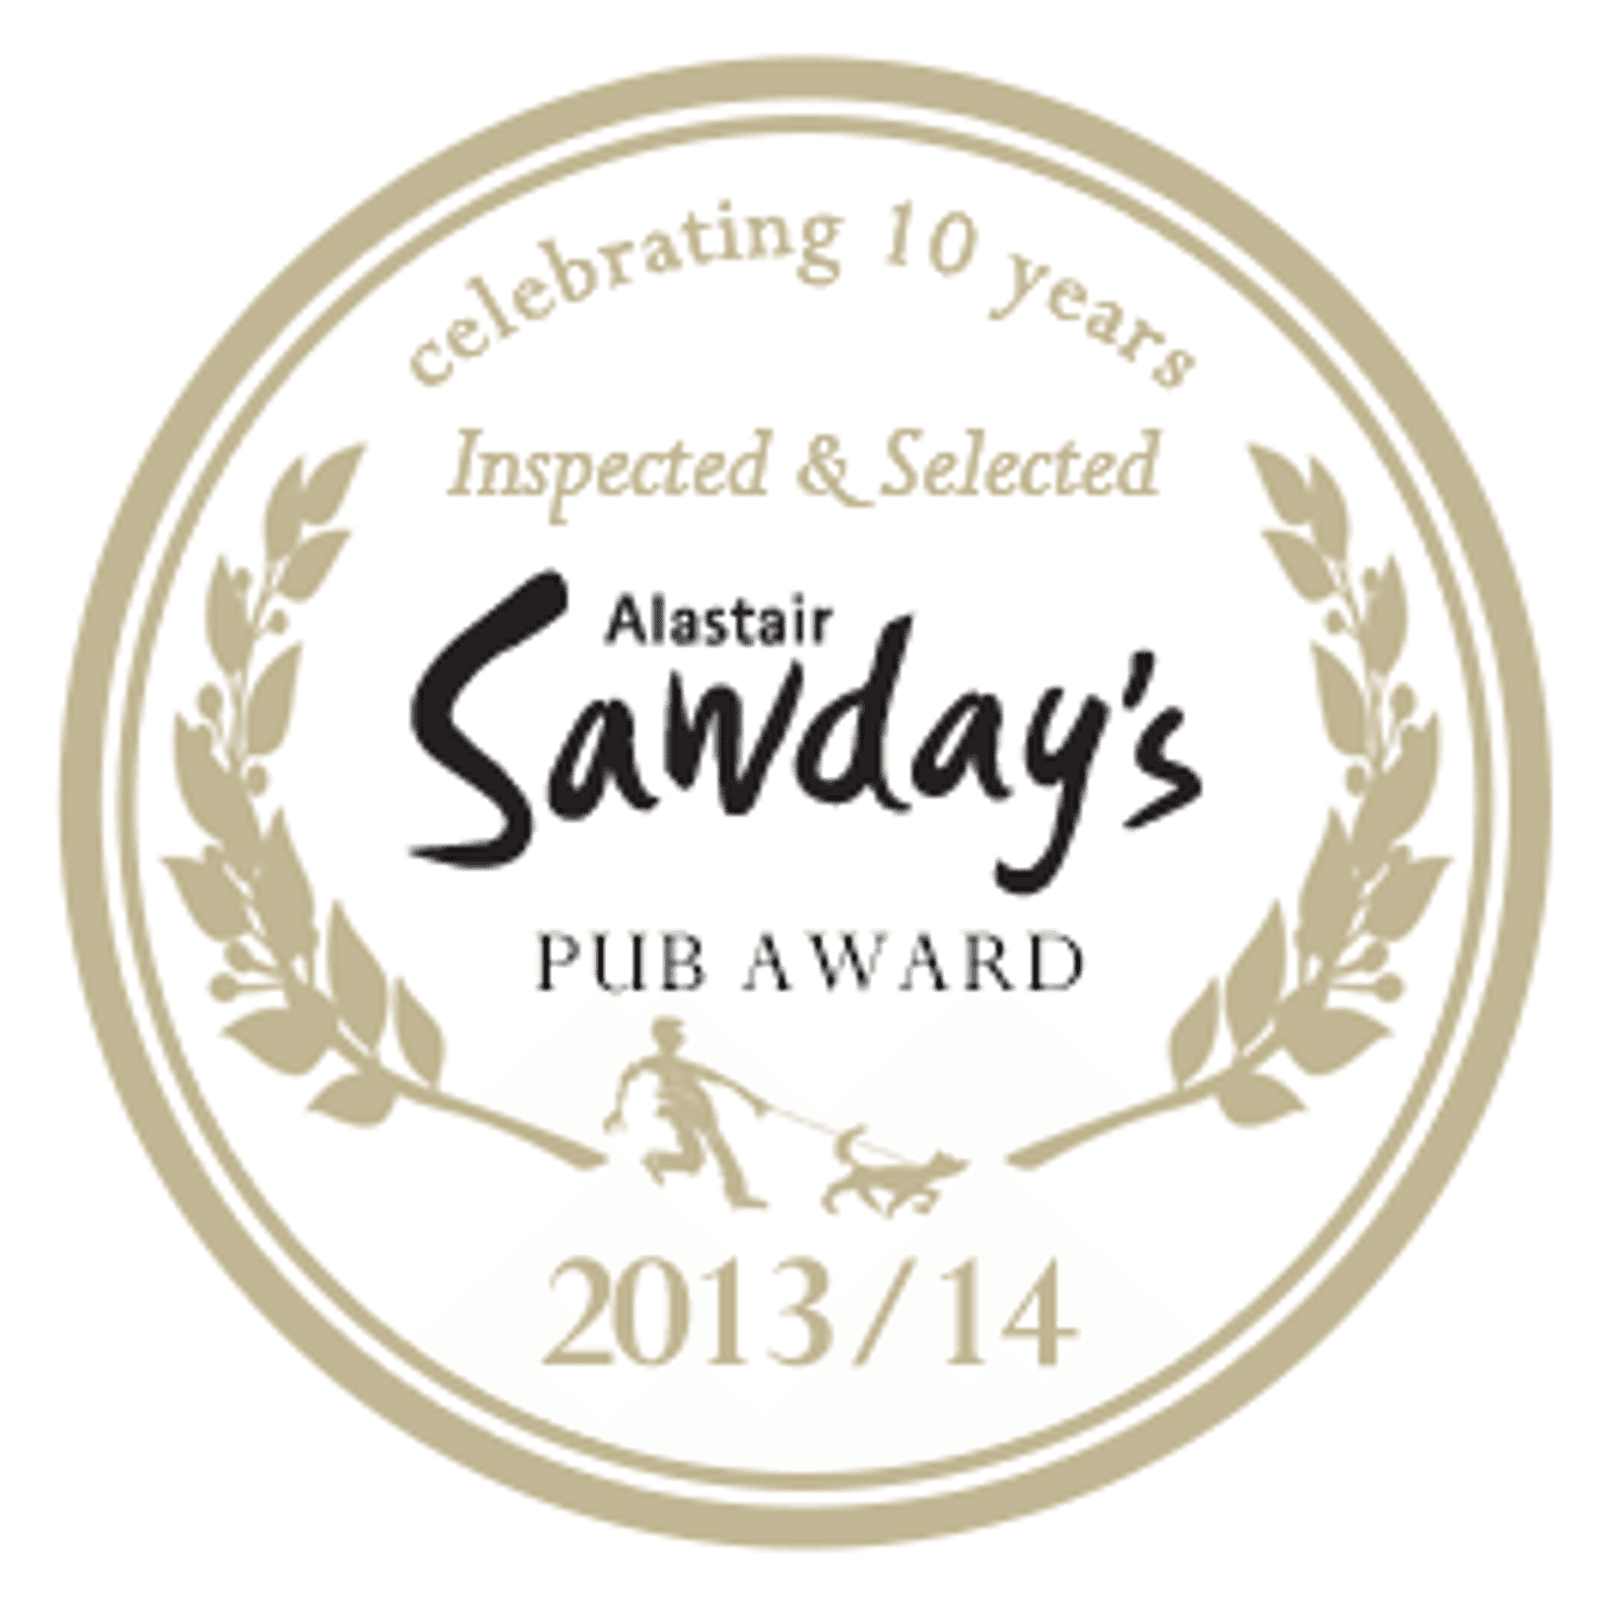 (English) Y Ffarmers awarded Sawday's Community Pub Award